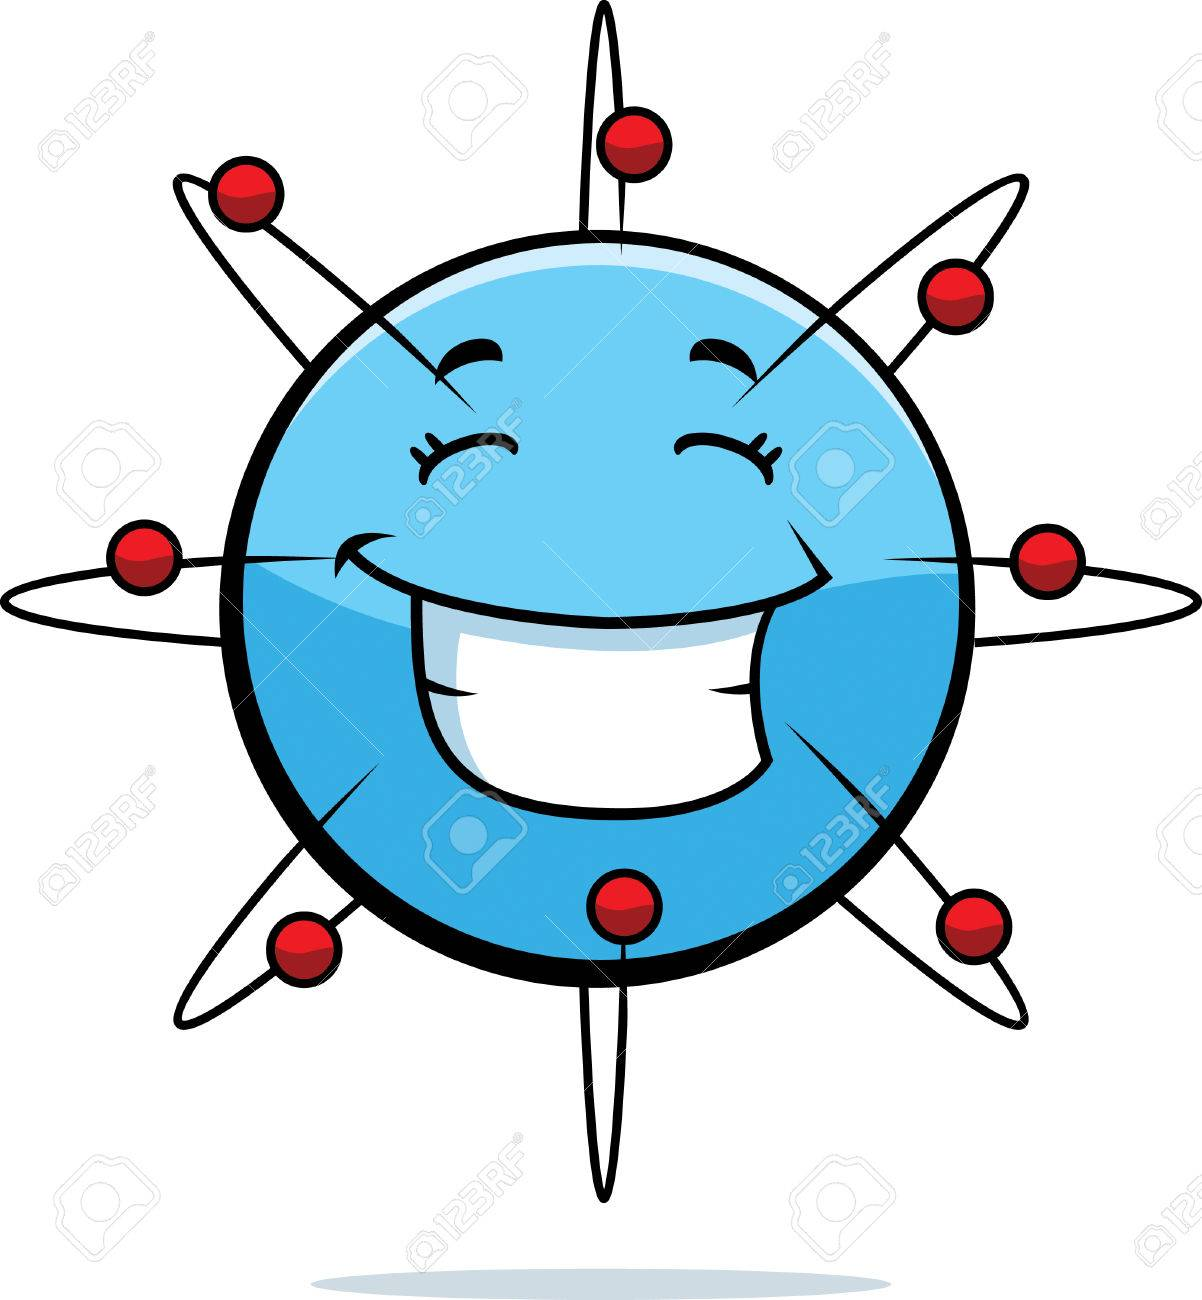 a cartoon blue atom happy and smiling royalty free cliparts